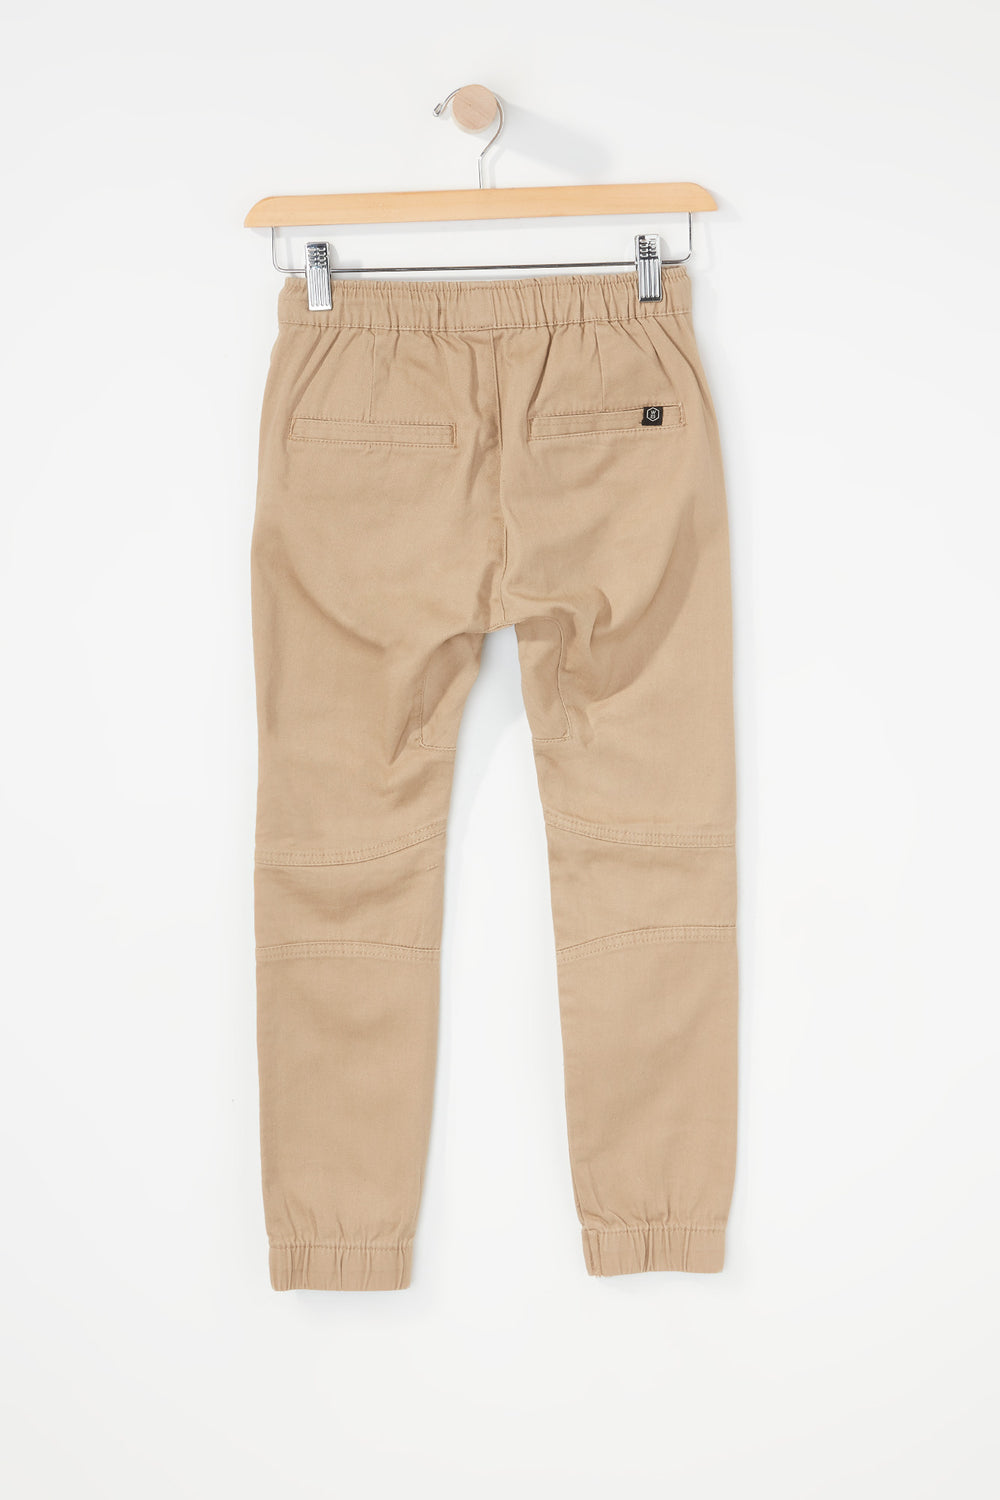 West49 Boys Moto Jogger Sand